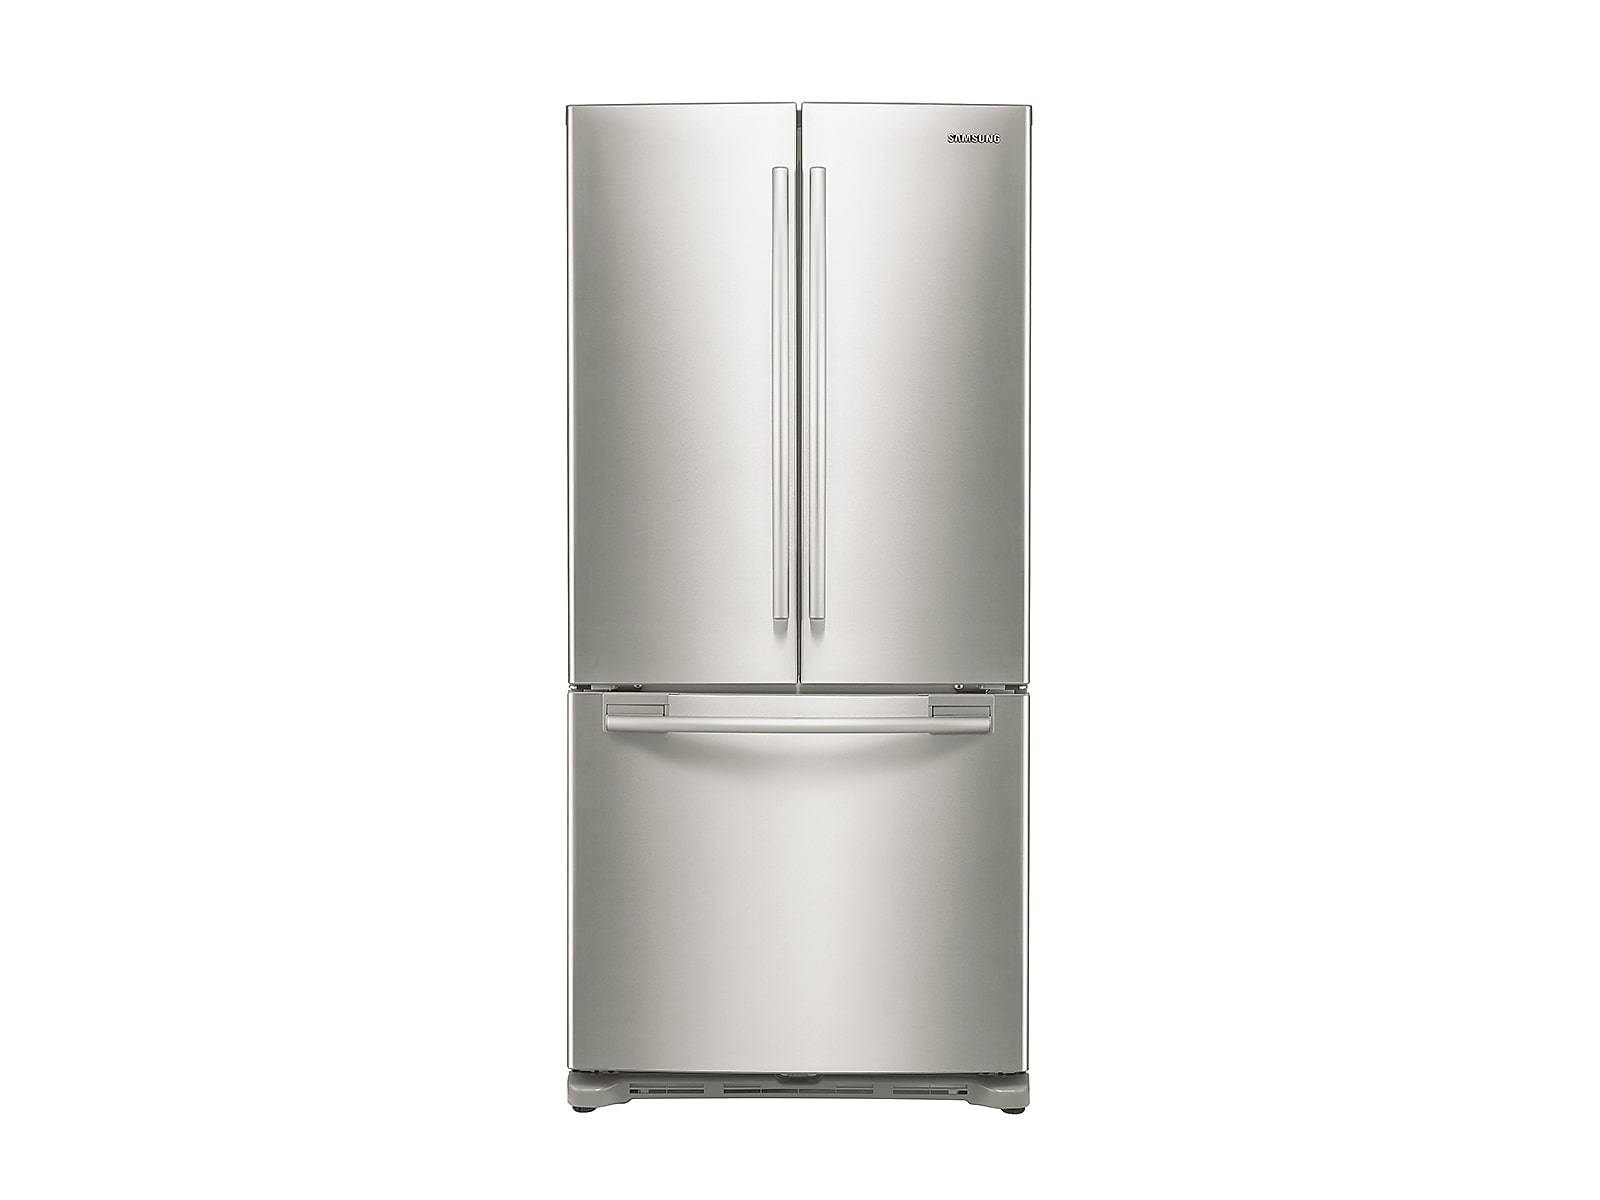 Samsung 18 cu. ft. Counter Depth French Door Refrigerator in Stainless Steel(RF18HFENBSR/US)